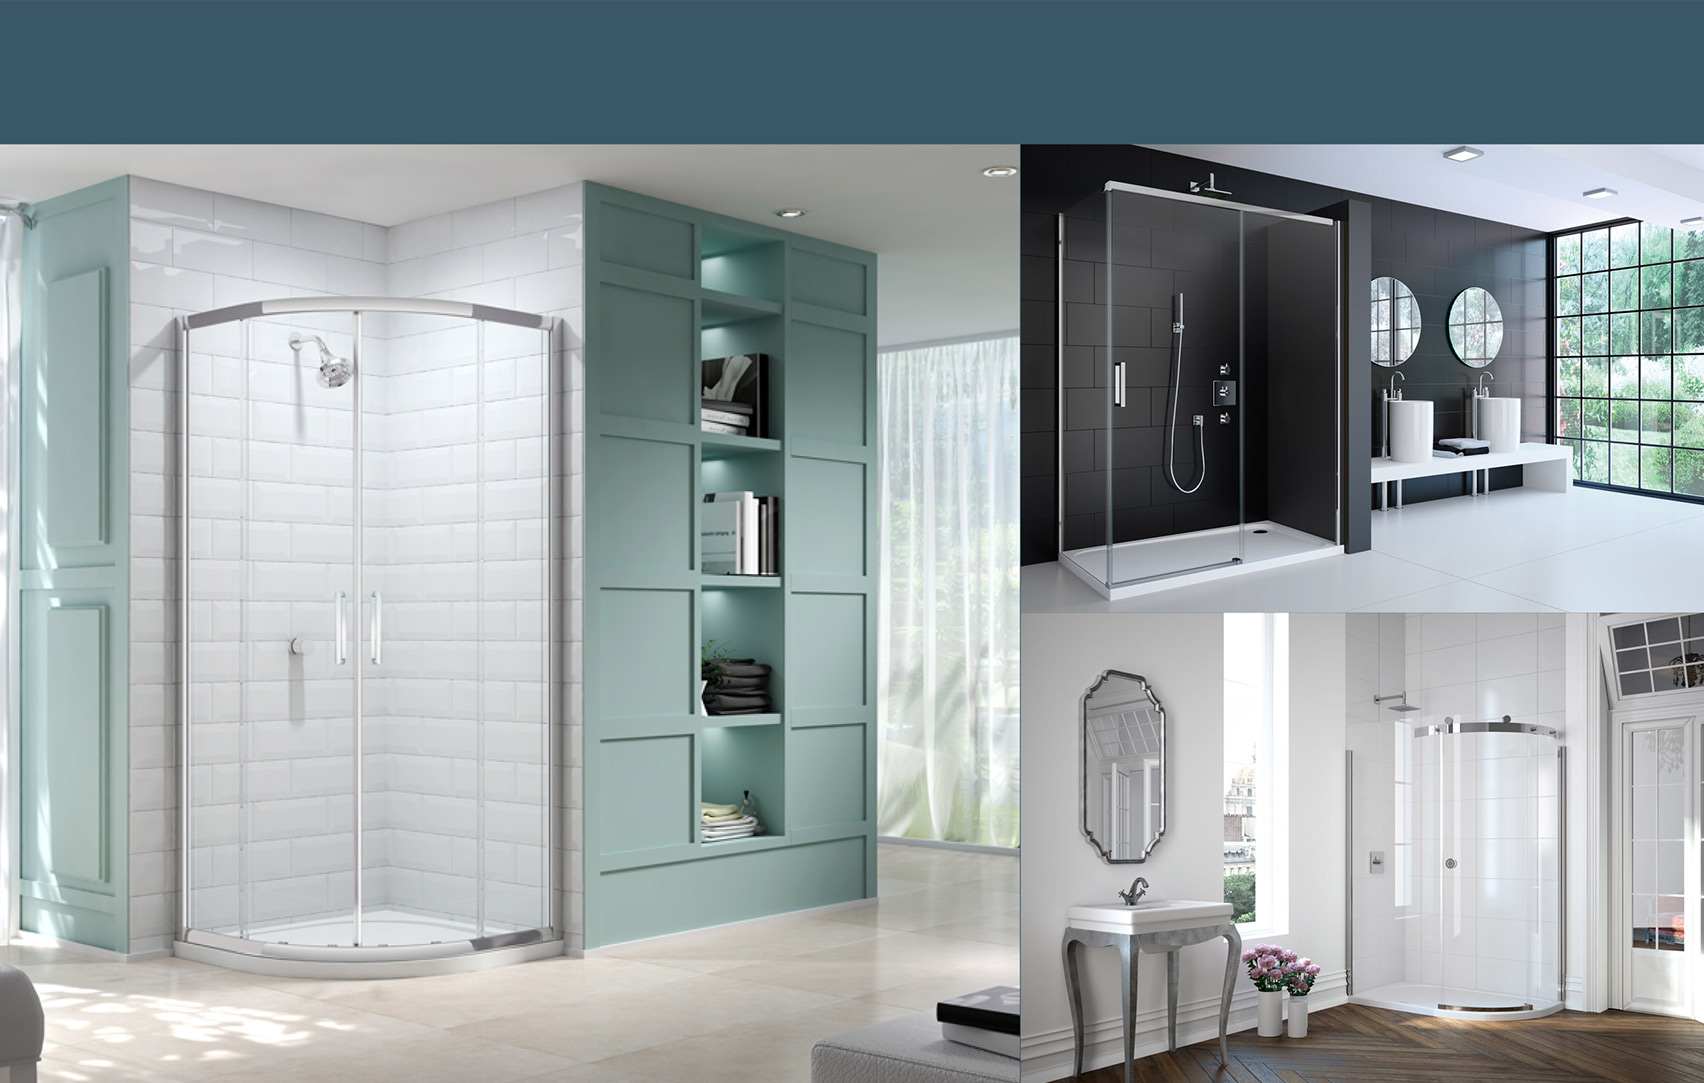 Bolton bathrooms ltd independent bathroom showroom bolton Bathroom design and supply ltd bolton